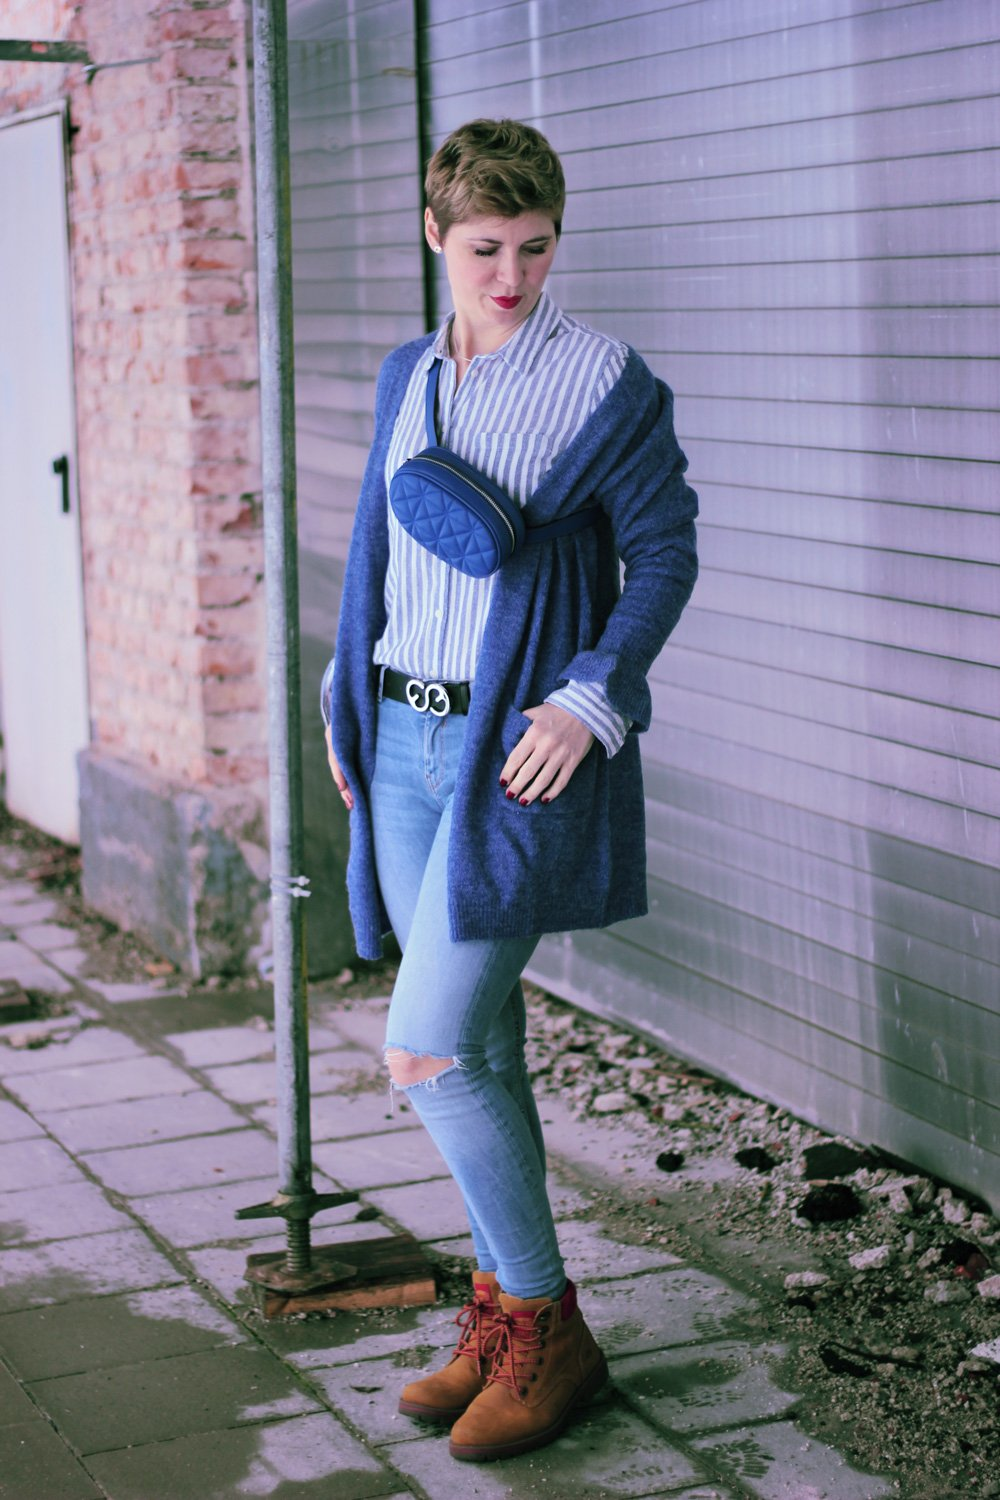 Conny Doll Lifestyle: Blogpost über The Bold Type von Amazon Prime, Casual Styling mt Gürteltasche, blauer Cardigan, Streifenbluse, Skinny